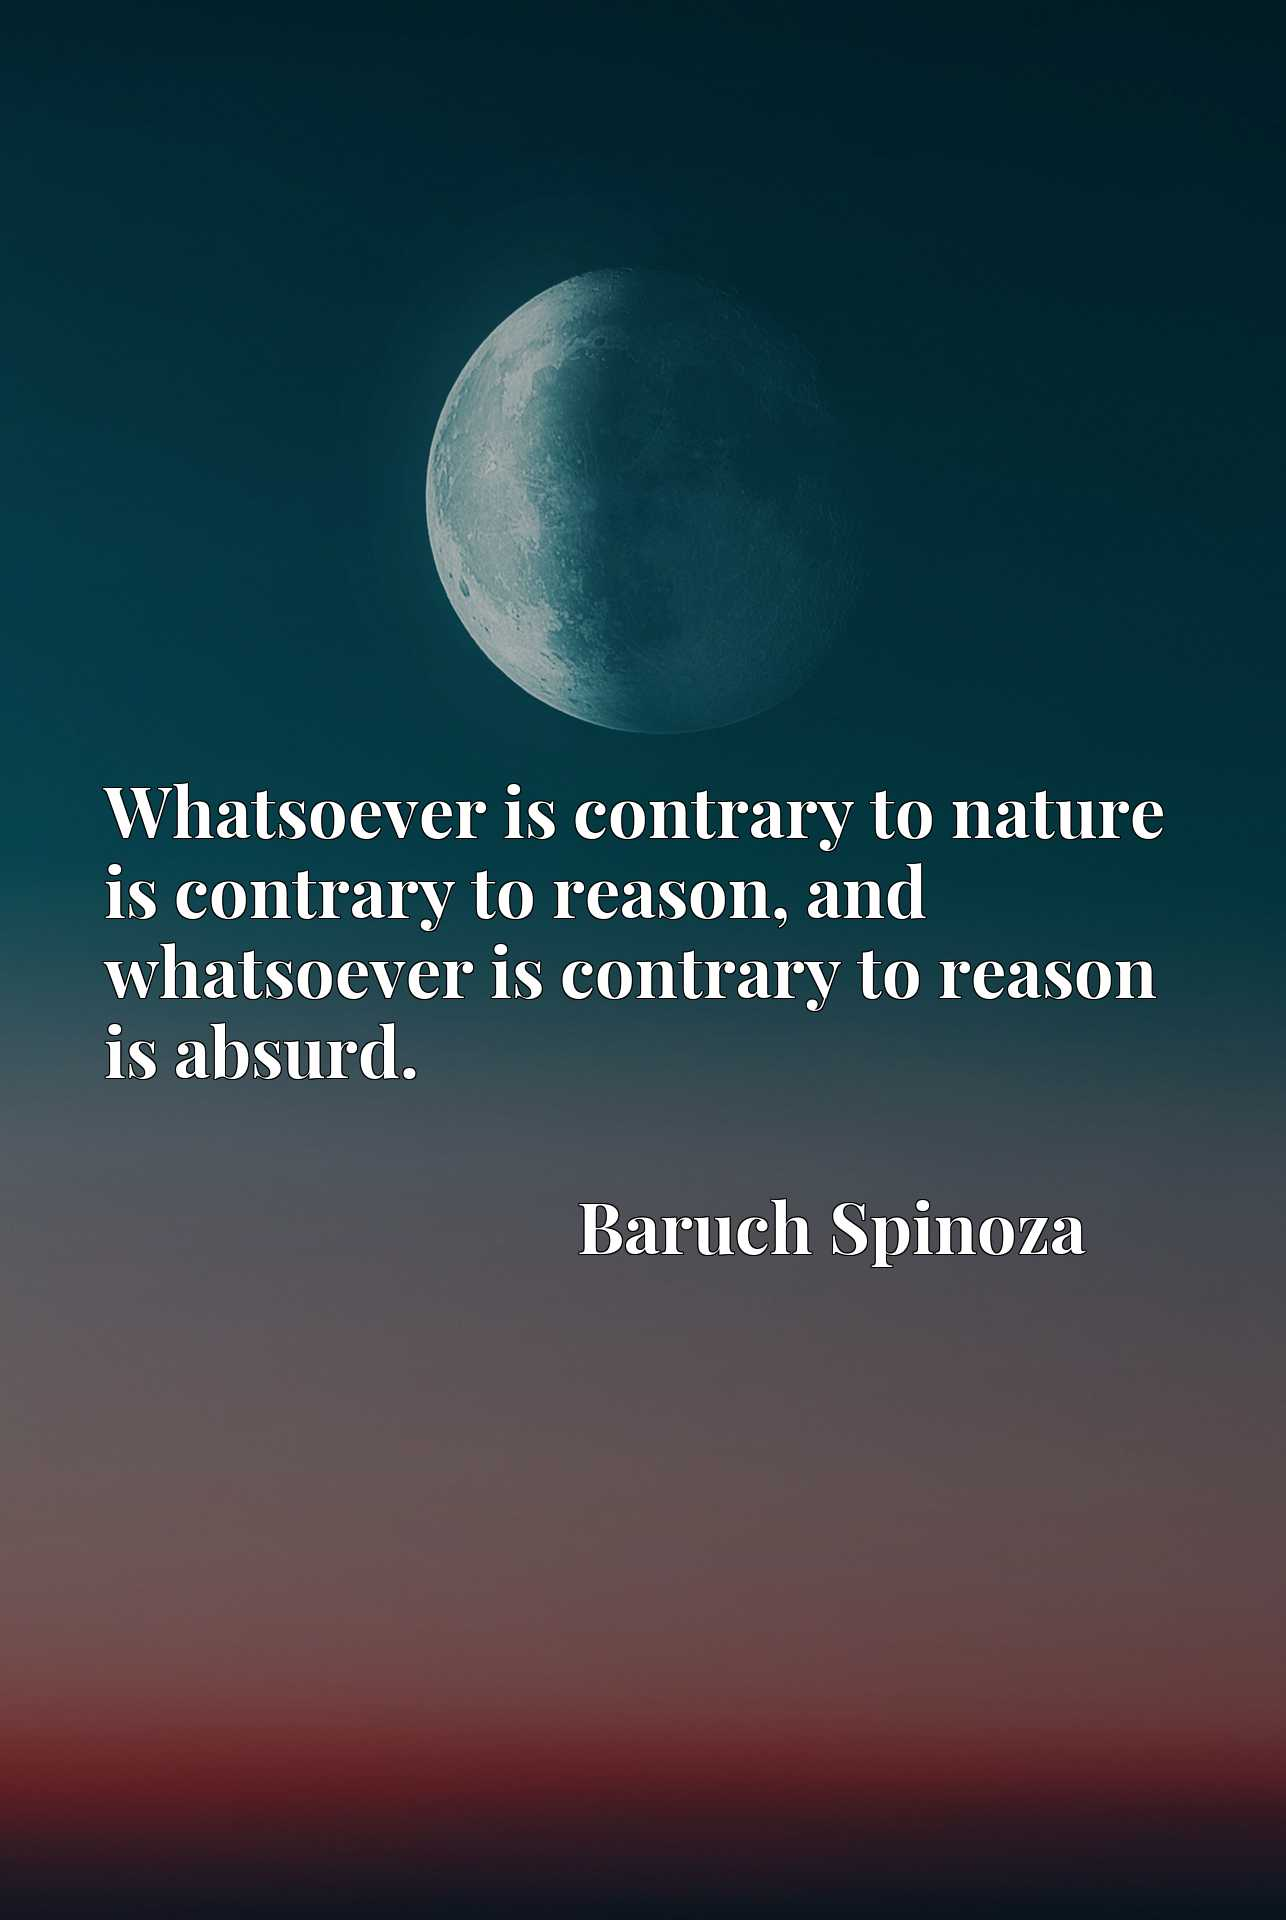 Quote Picture :Whatsoever is contrary to nature is contrary to reason, and whatsoever is contrary to reason is absurd.